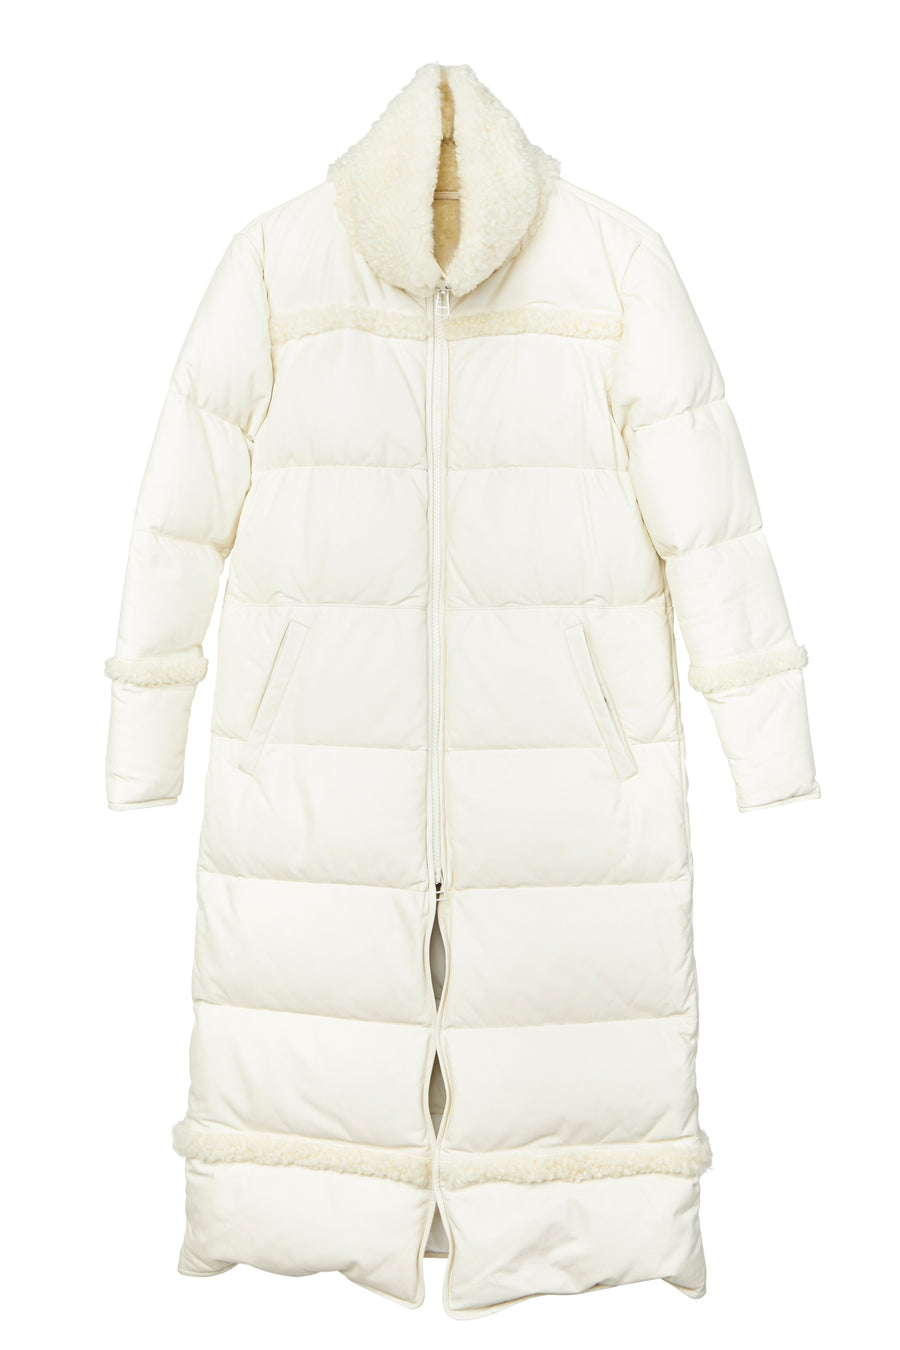 Hekla Coat White